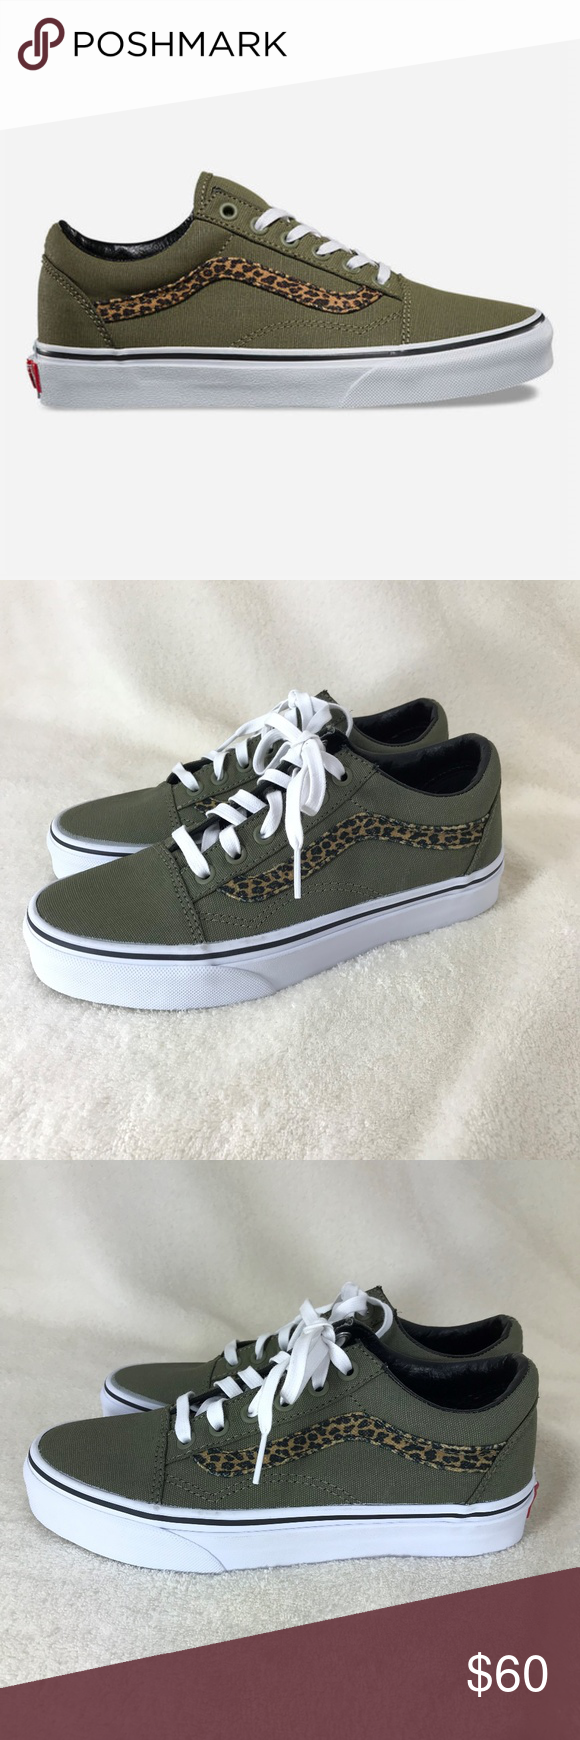 fdb483107365 Vans Old Skool Mini Leopard Skate Shoes Vans Women's Mini Old Skool skate  shoe. Olive green with leopard side stripe. Textile canvas uppers with  padded ...